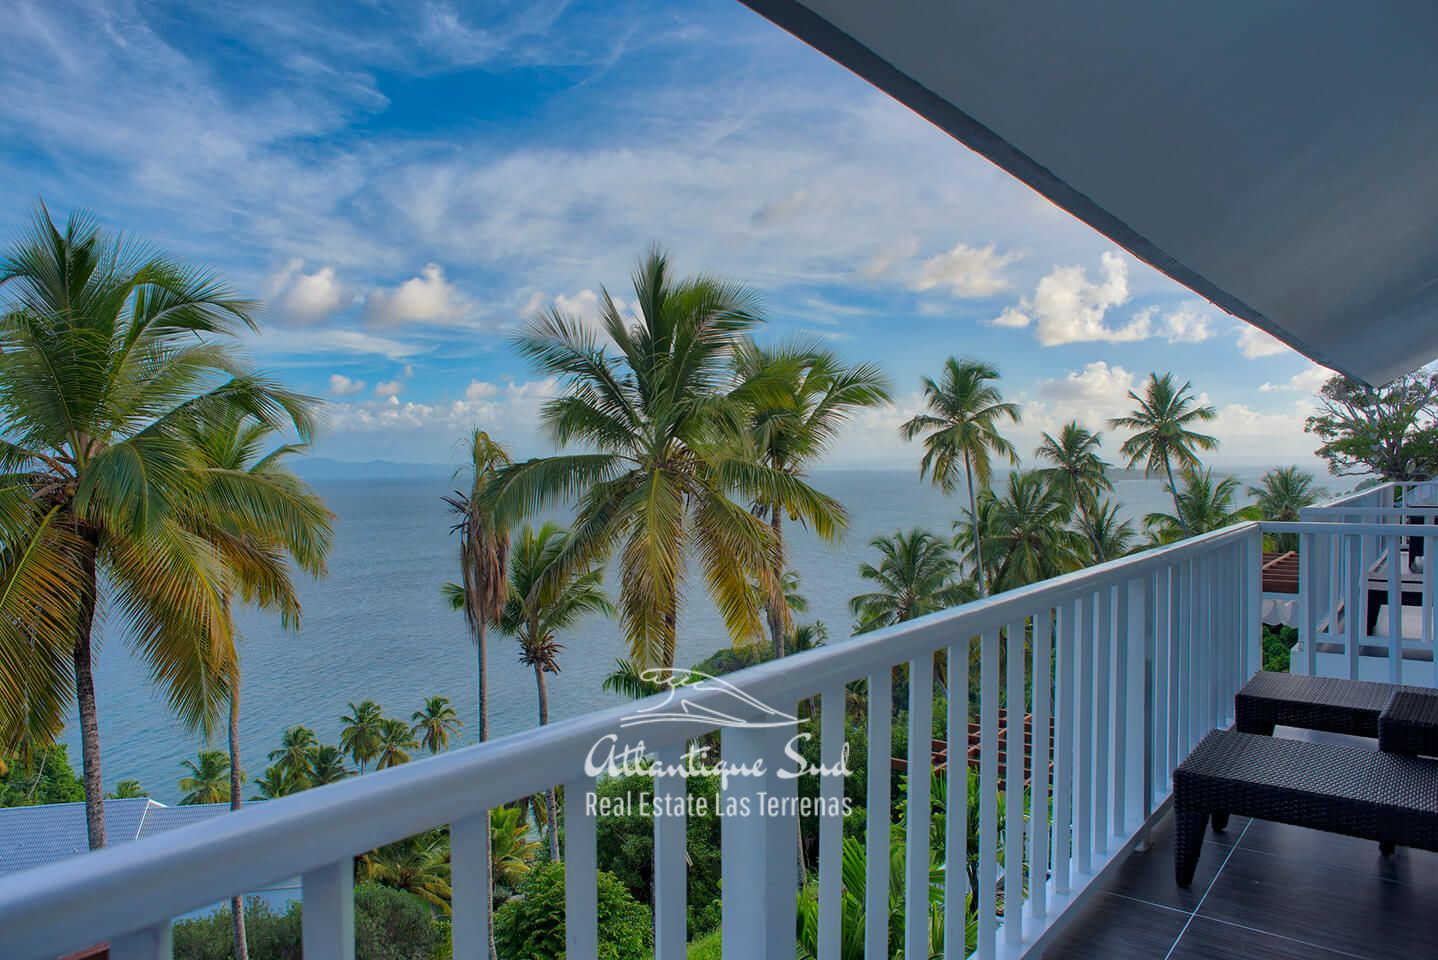 Condos for sale in samana Dominican2.jpg